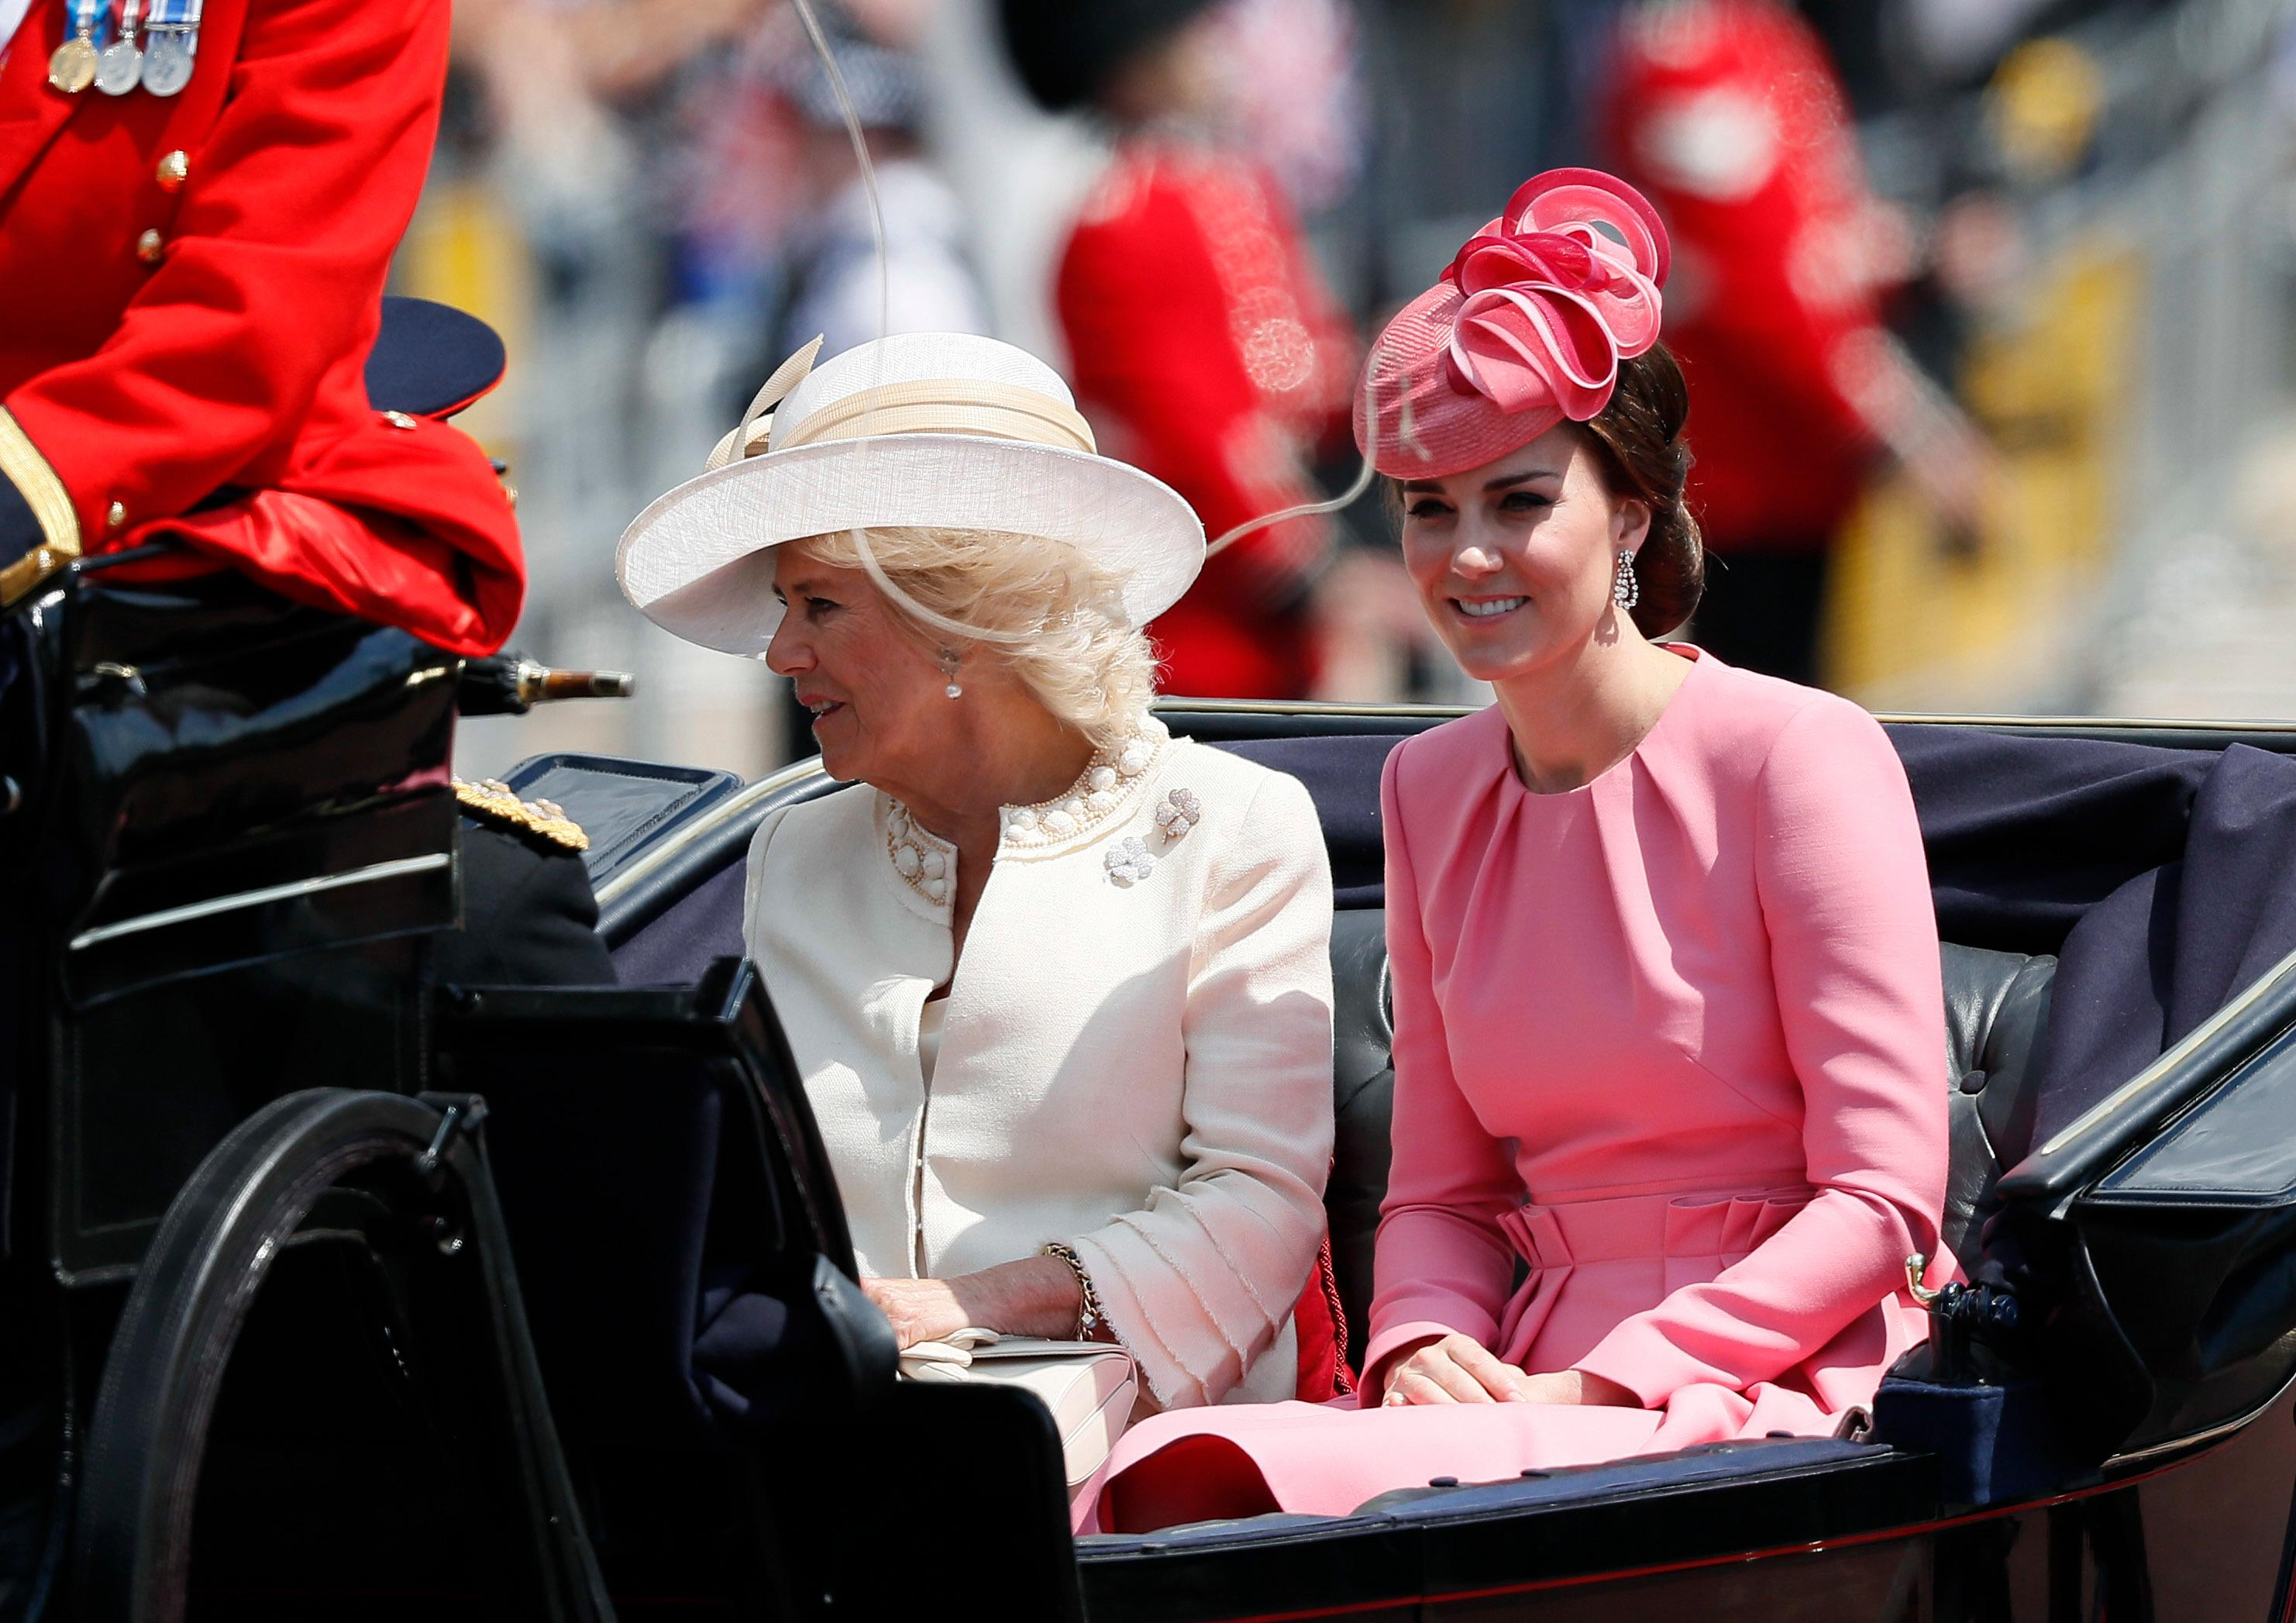 Britain's Camilla, The Duchess of Cornwall, left, and Kate, The Duchess of Cambridge return to Buckingham Palace, after attending the annual Trooping the Colour Ceremony in London, Saturday, June 17, 2017. (AP Photo/Kirsty Wigglesworth)